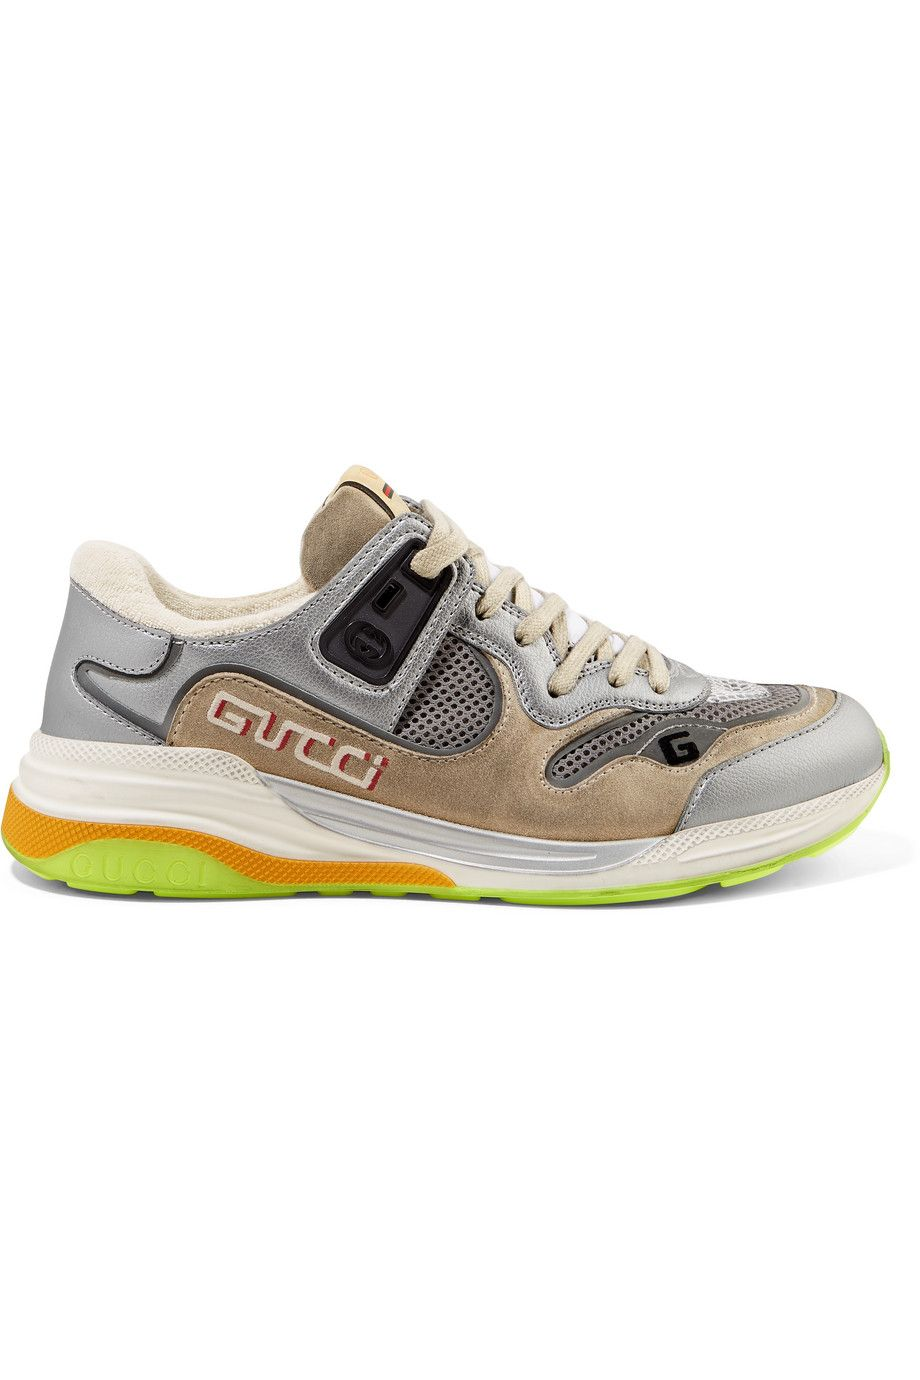 gucci-ultrapace-silver-metallic-leather-and-mesh-suede-sneakers